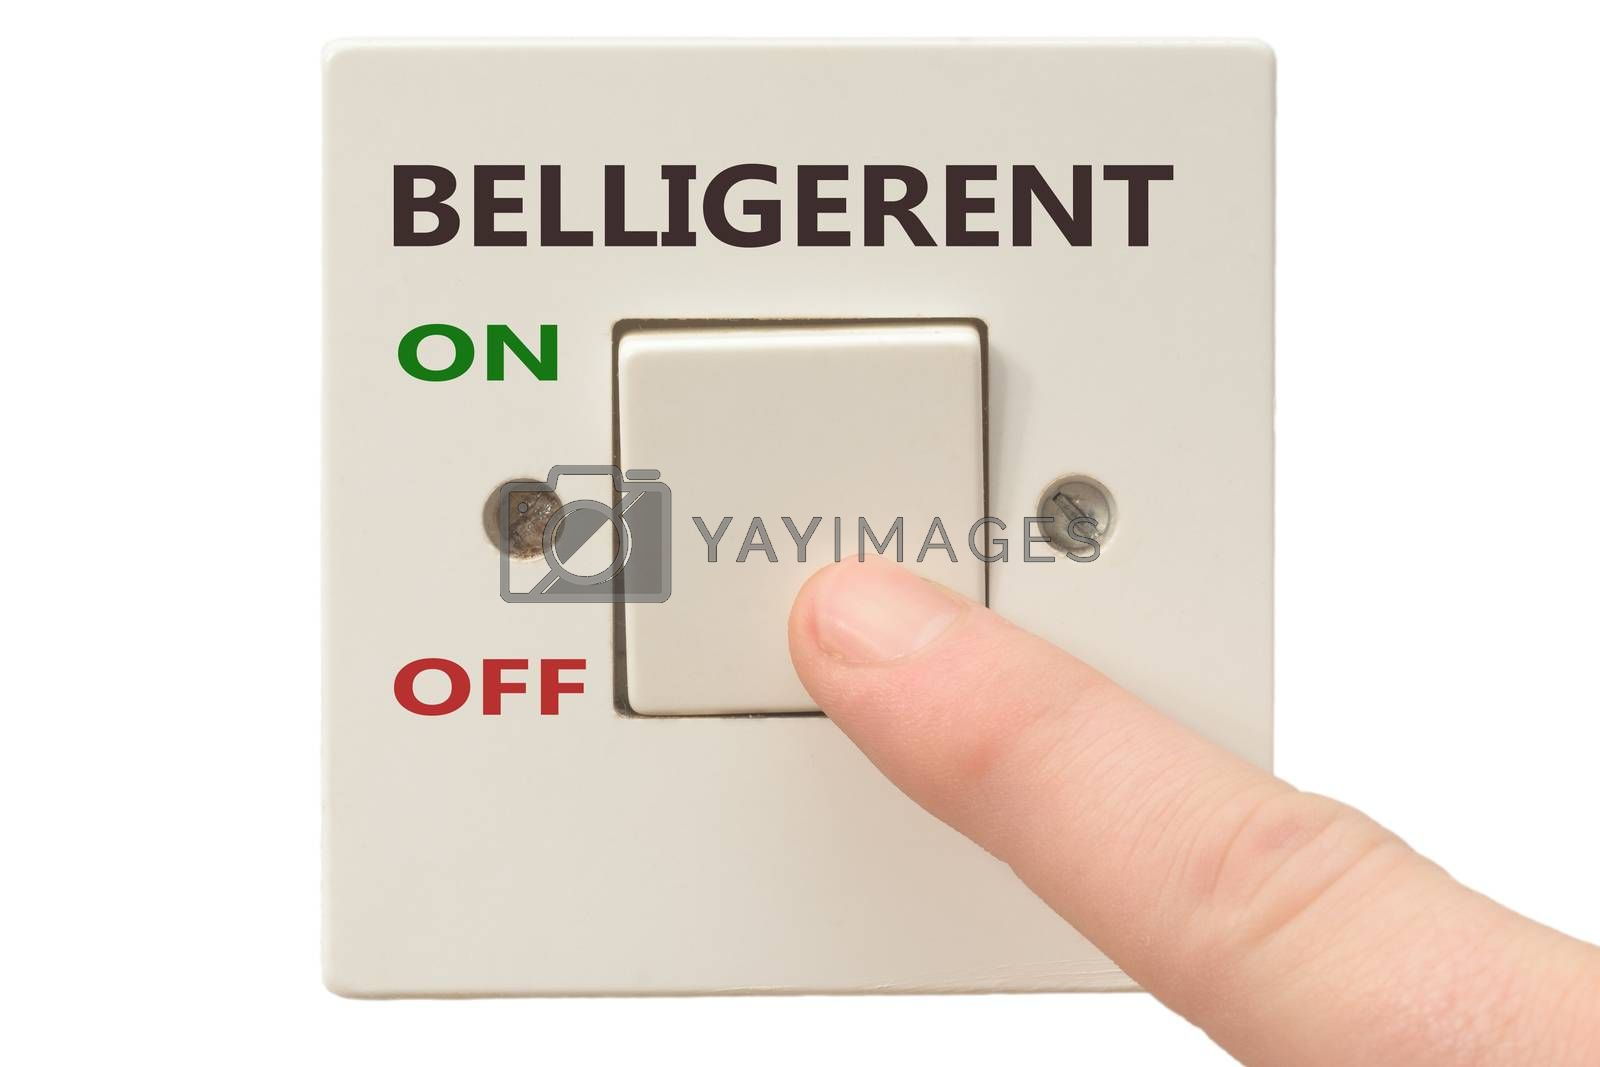 Turning off Belligerent with finger on electrical switch